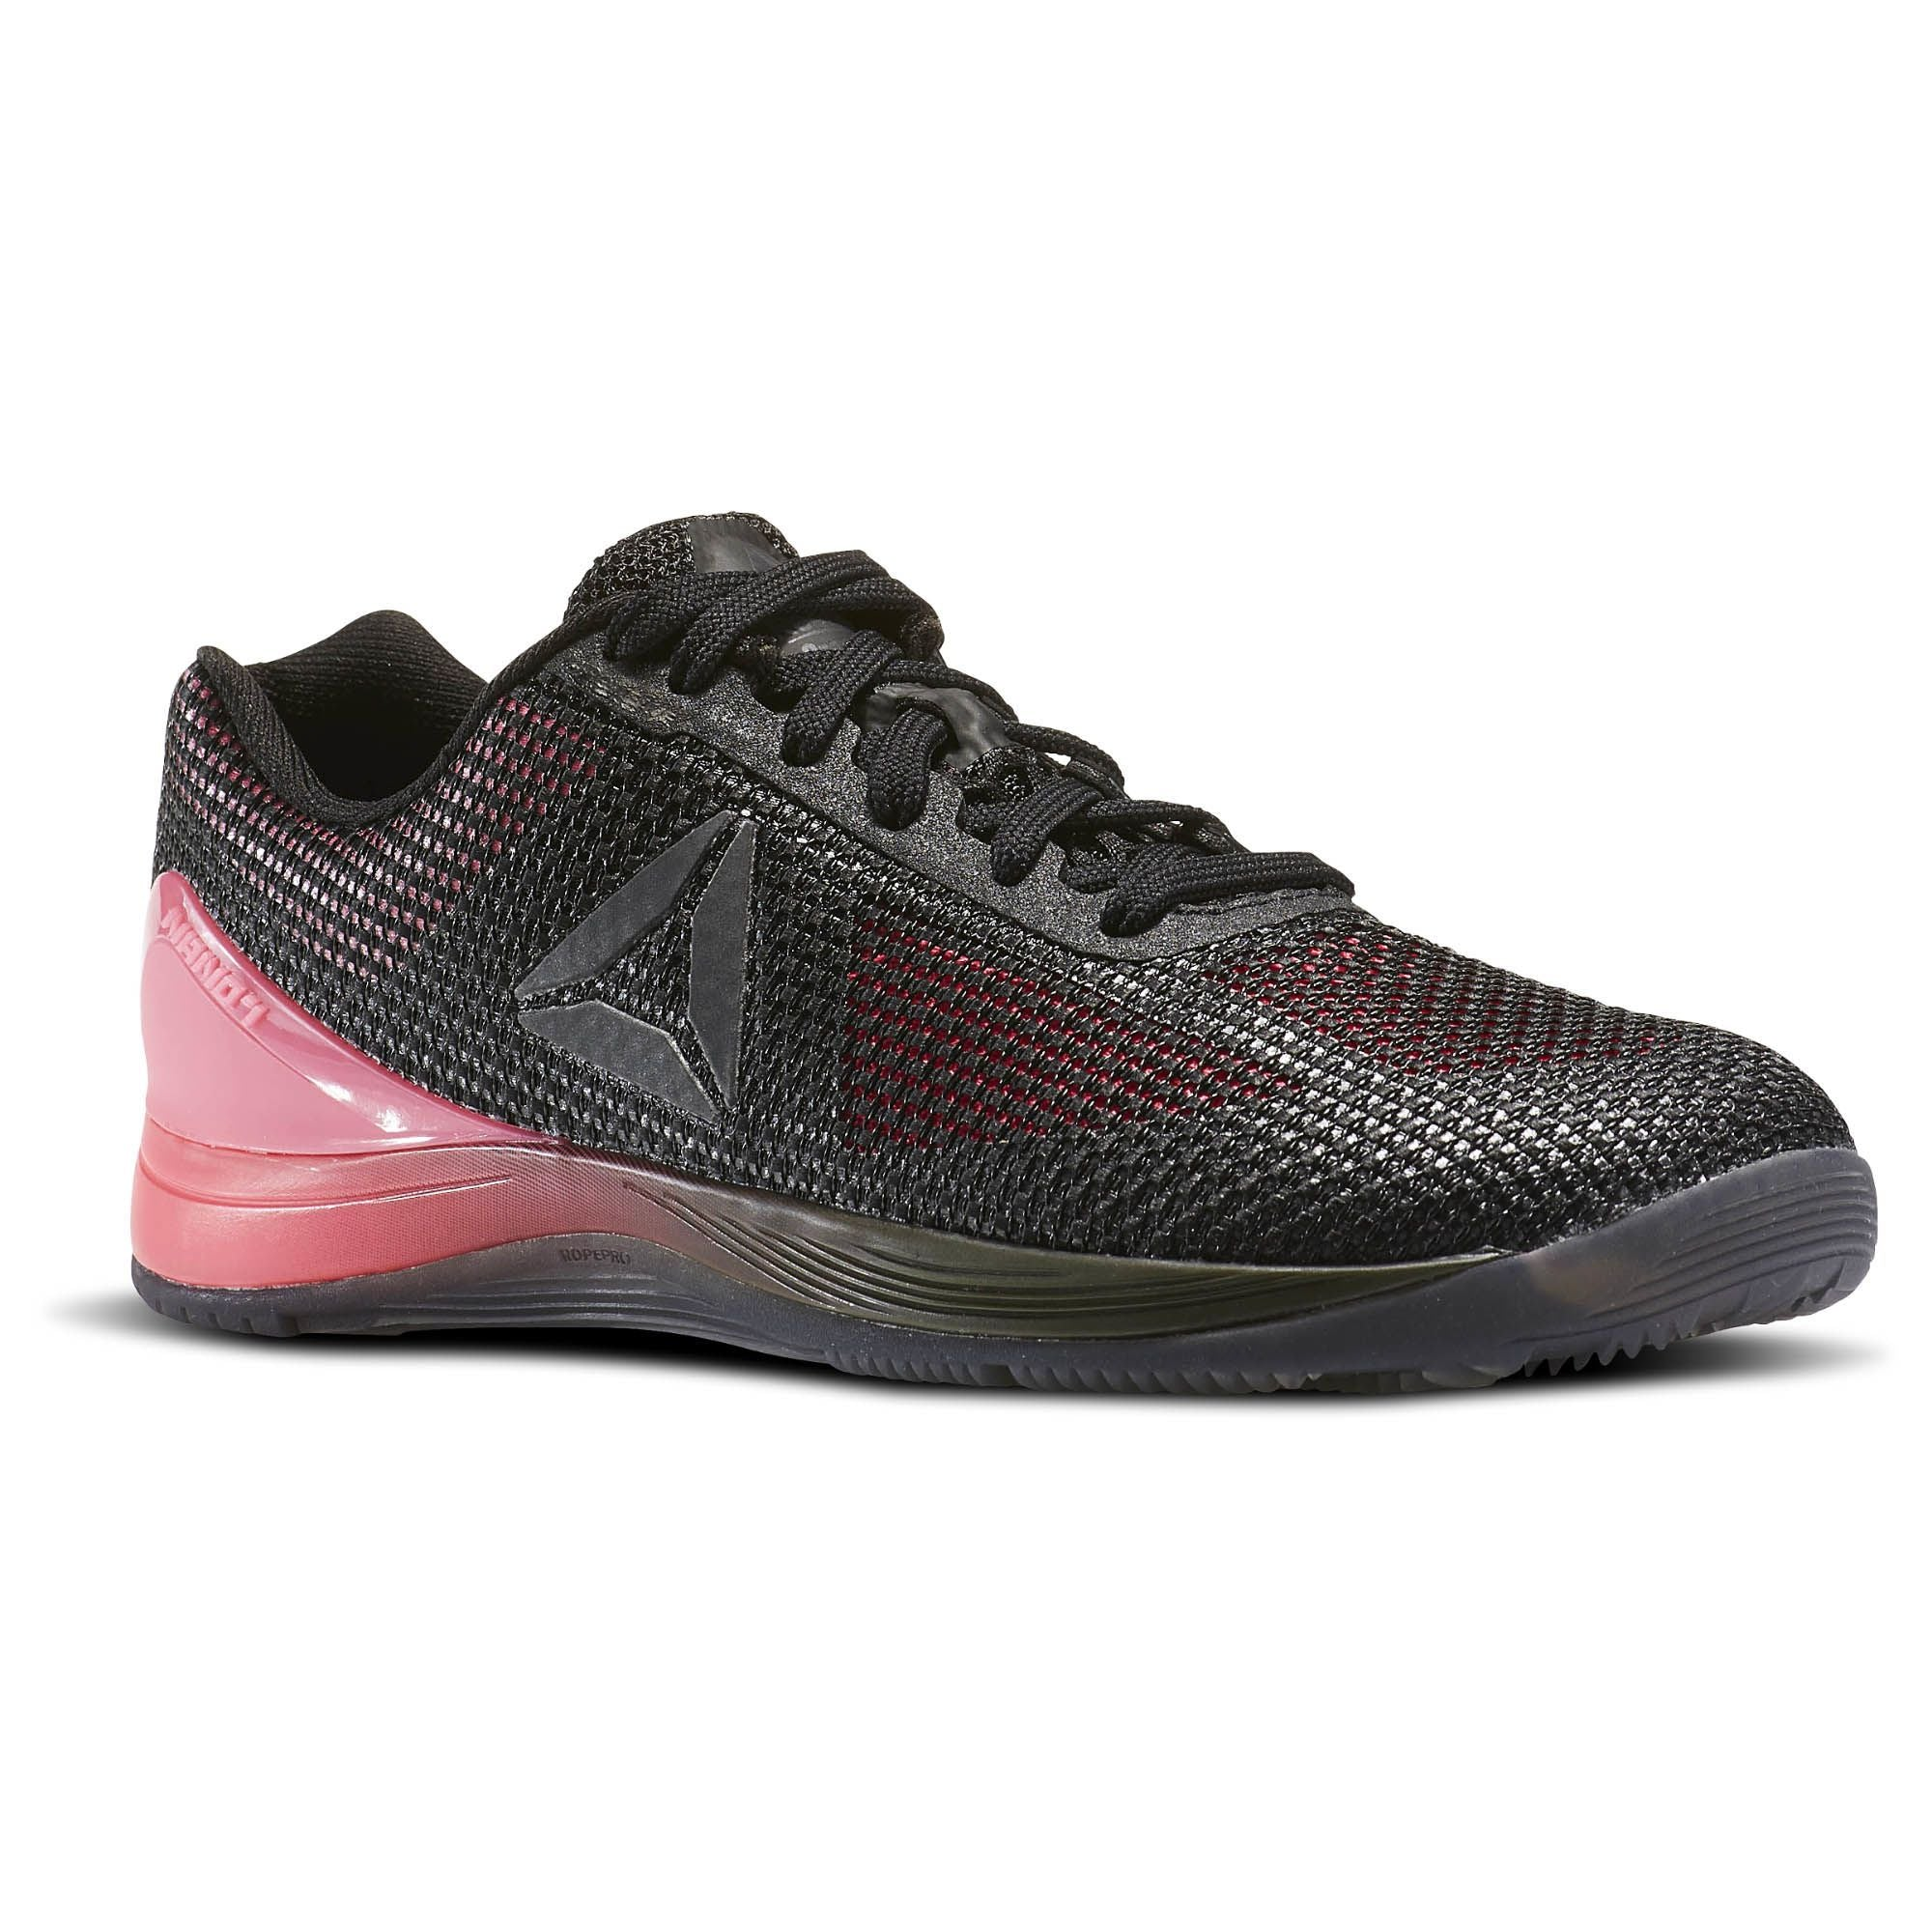 [BD5119] Womens Crossfit Nano 7.0